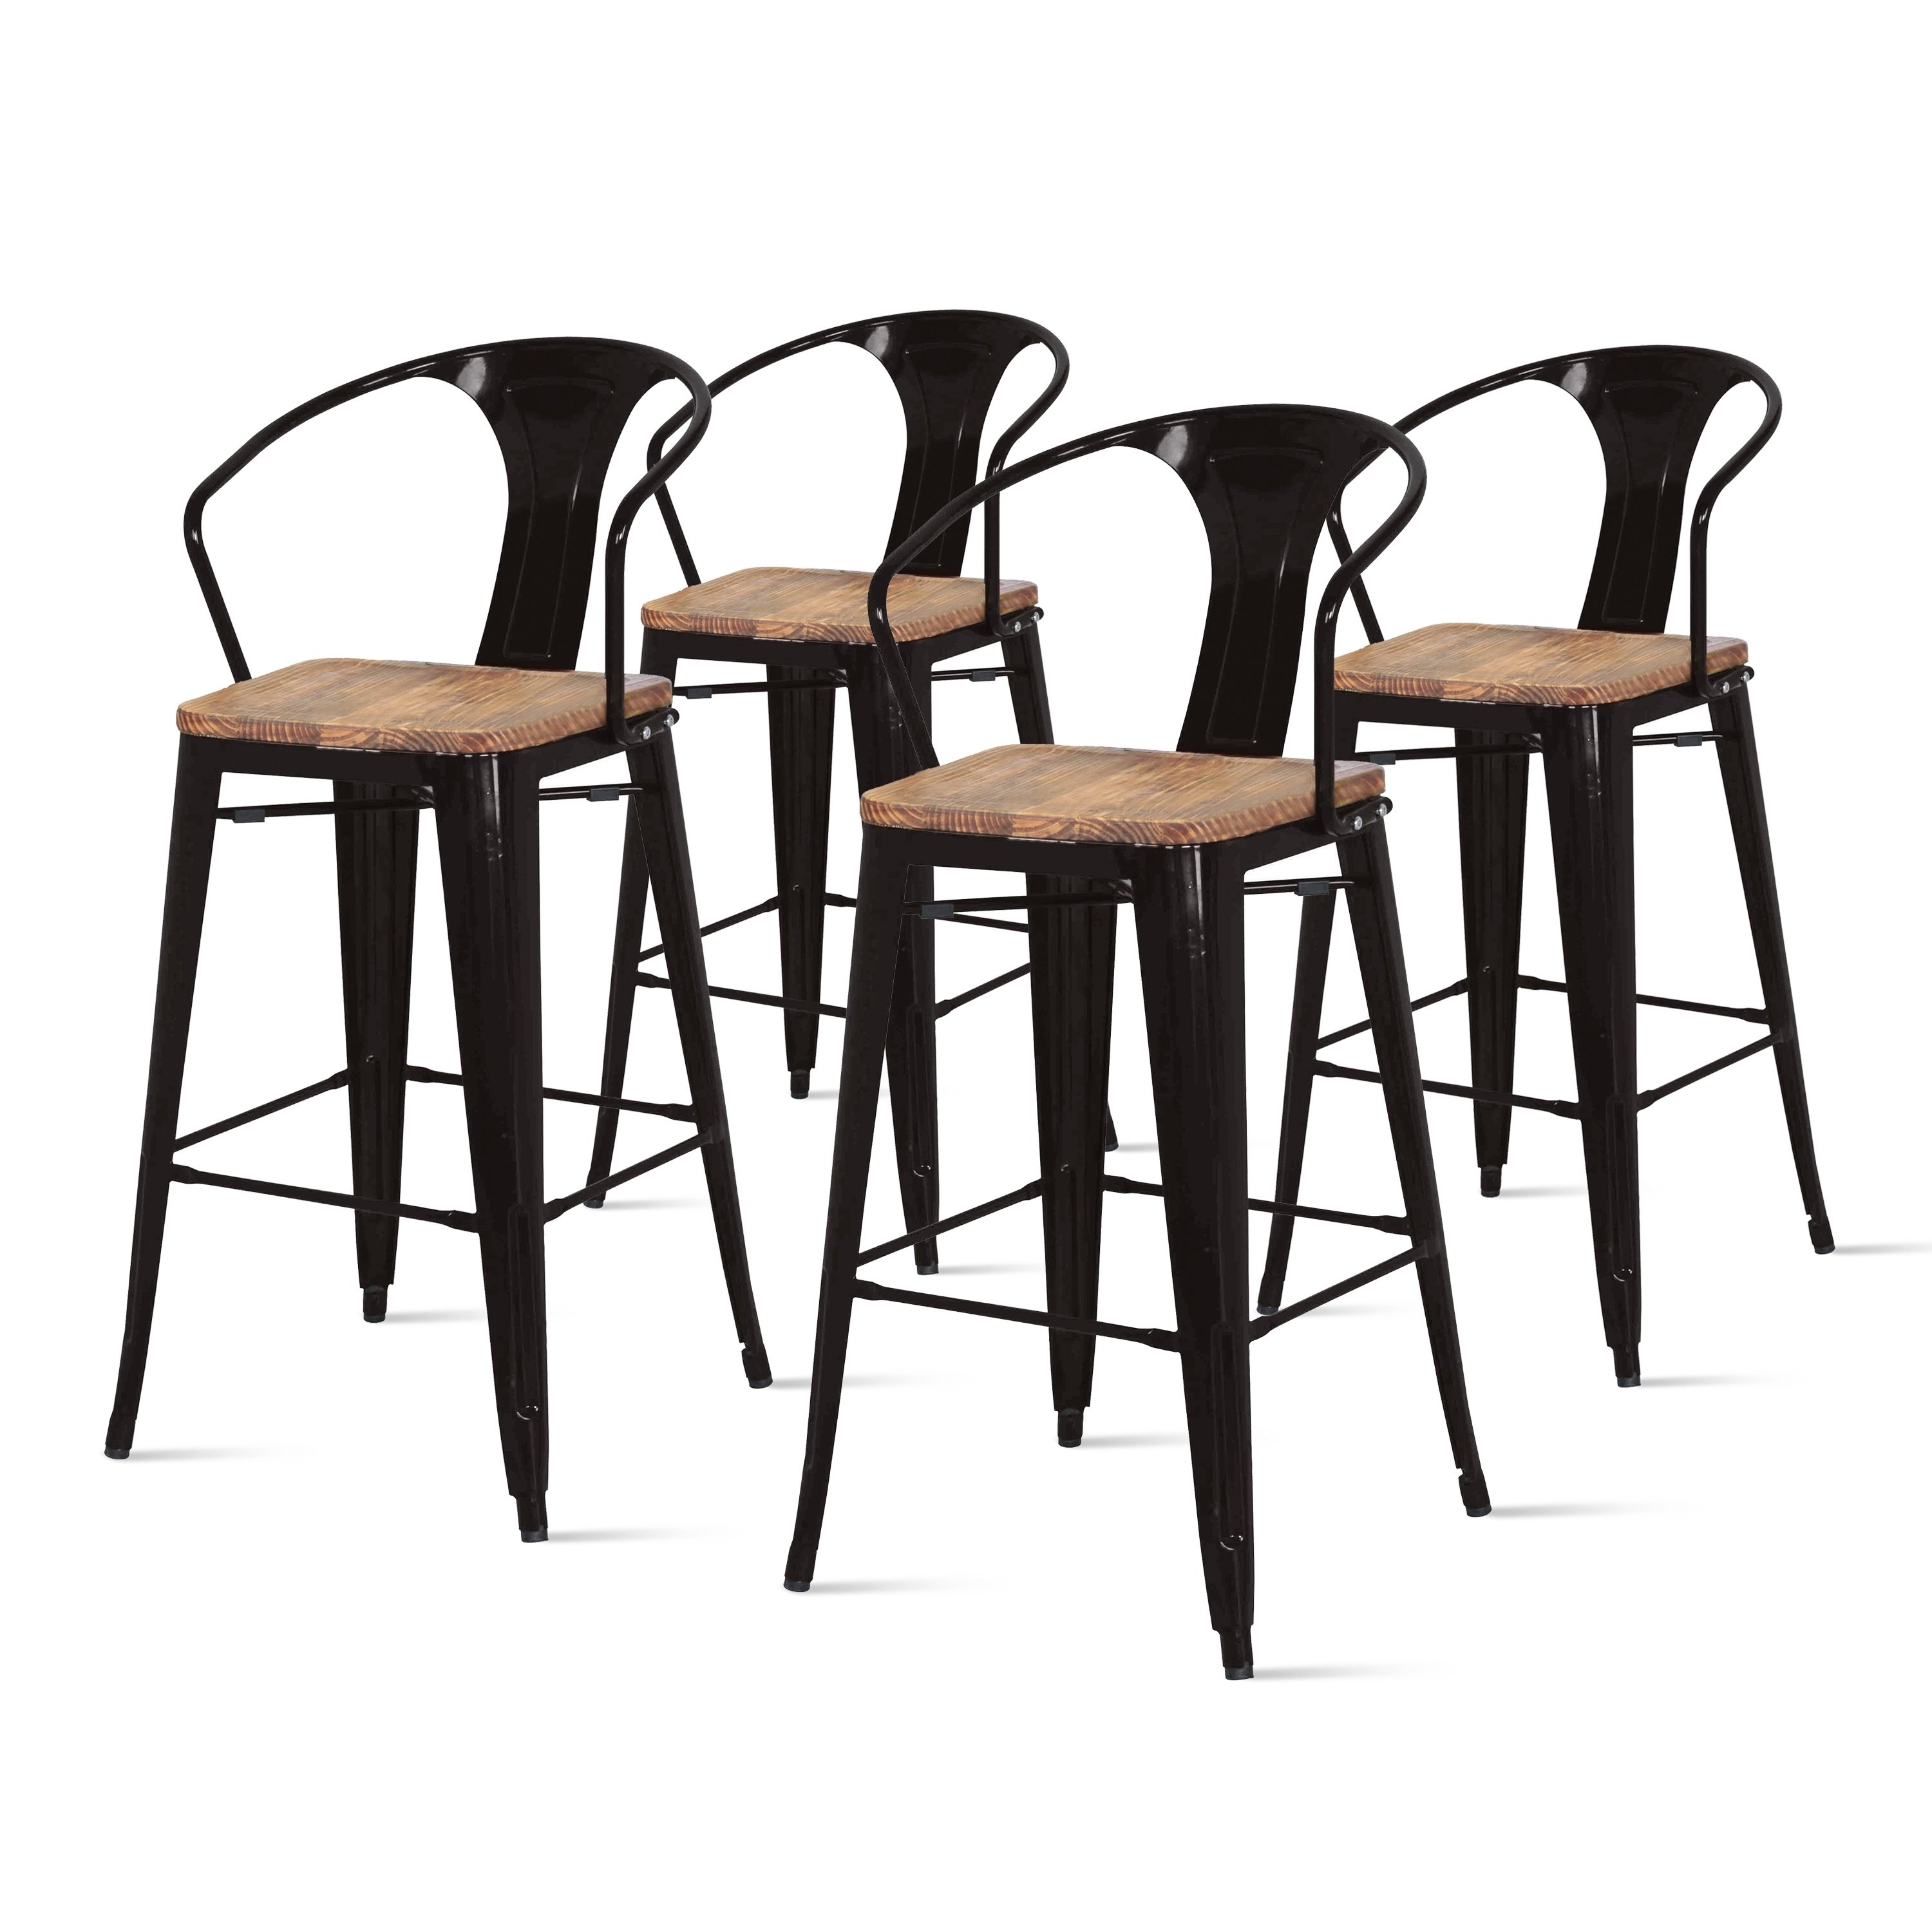 Astonishing Metropolis Metal Bar Stool Set Of 4 Red In 2019 Products Caraccident5 Cool Chair Designs And Ideas Caraccident5Info